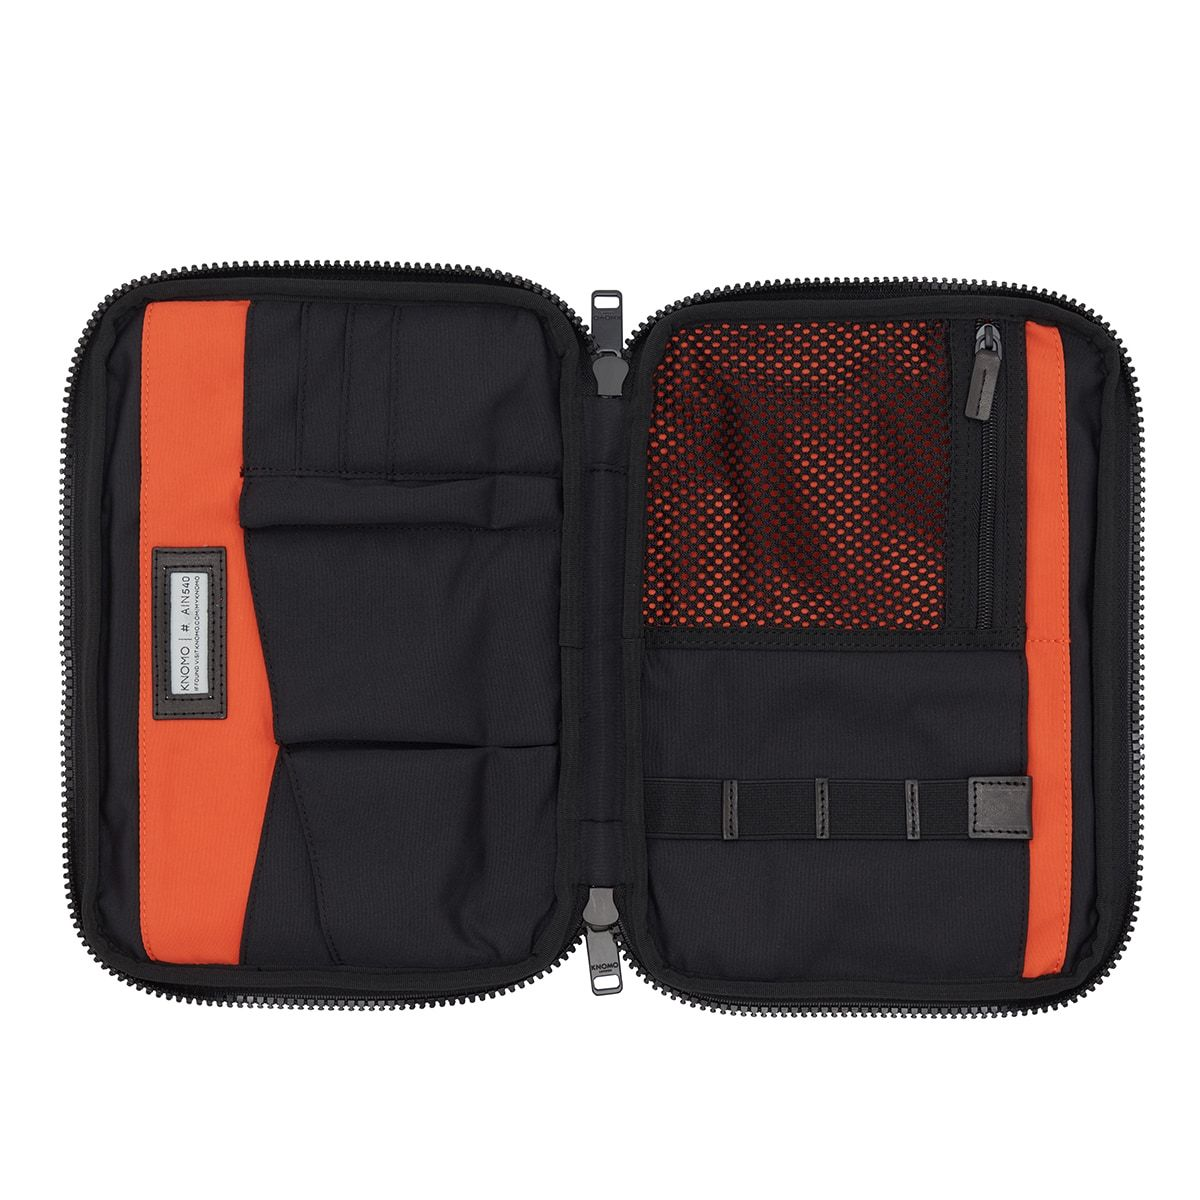 "KNOMO Fulham Knomad X-Body Organiser Tech Organiser Internal View Empty 10.5"" -  Black 